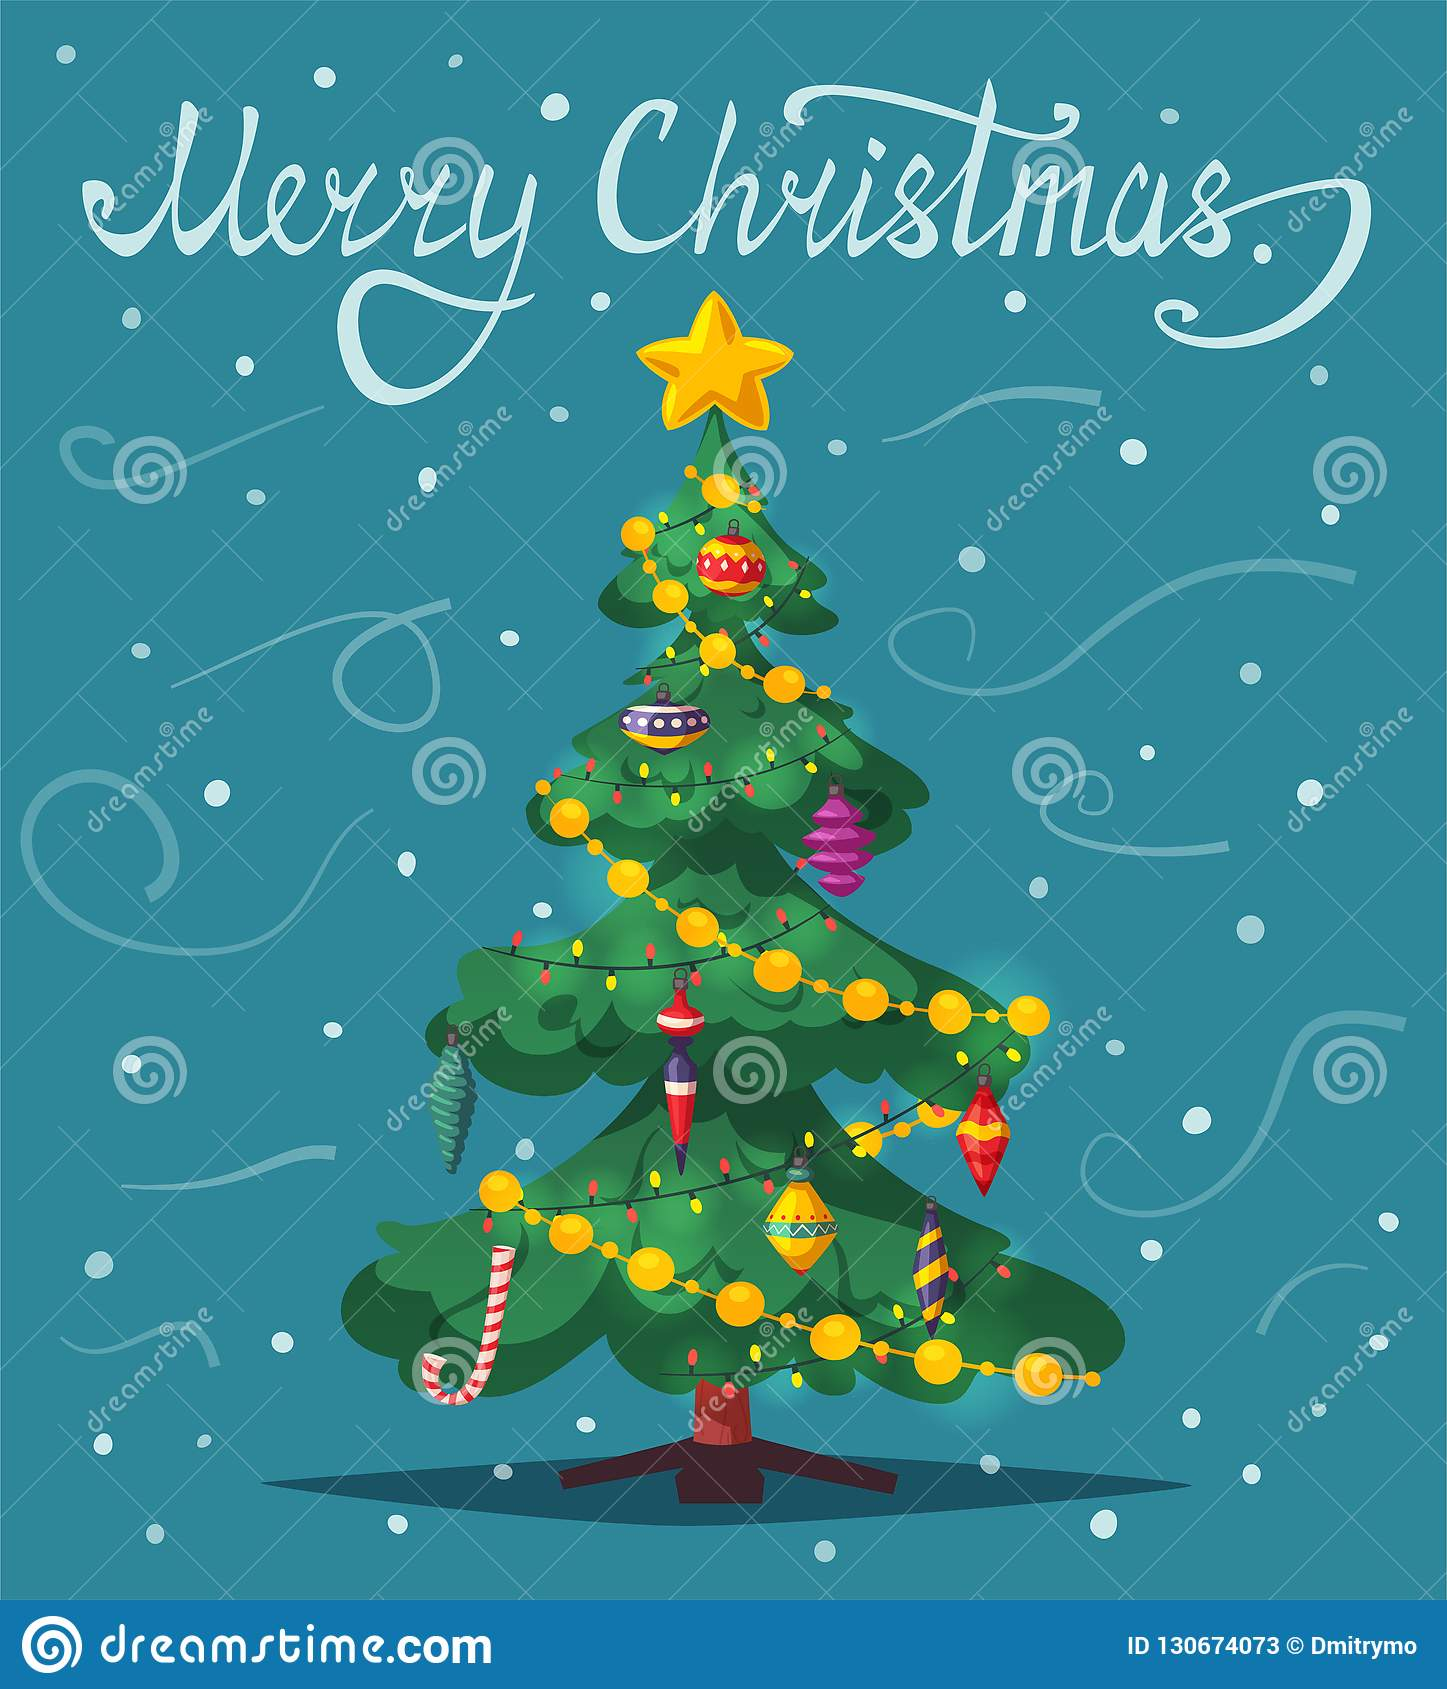 Beautiful Christmas Tree Cartoon Vector Illustration Stock Vector Illustration Of Noel Decoration 130674073